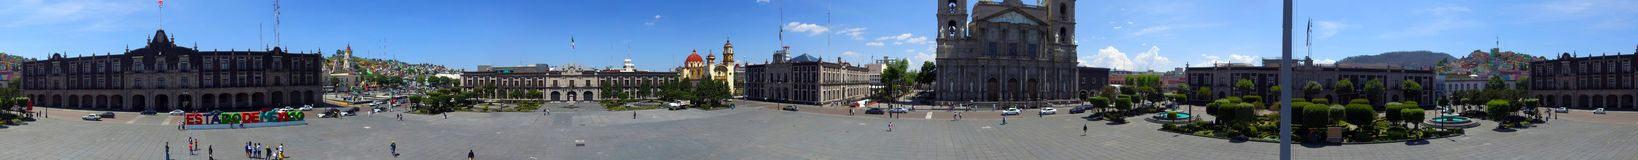 Panoramic view Toluca mexico. Toluca mexico downtown aerial view 360 degrees panoramic view, principal government buildings in the Downtown of Toluca mexico Stock Photos